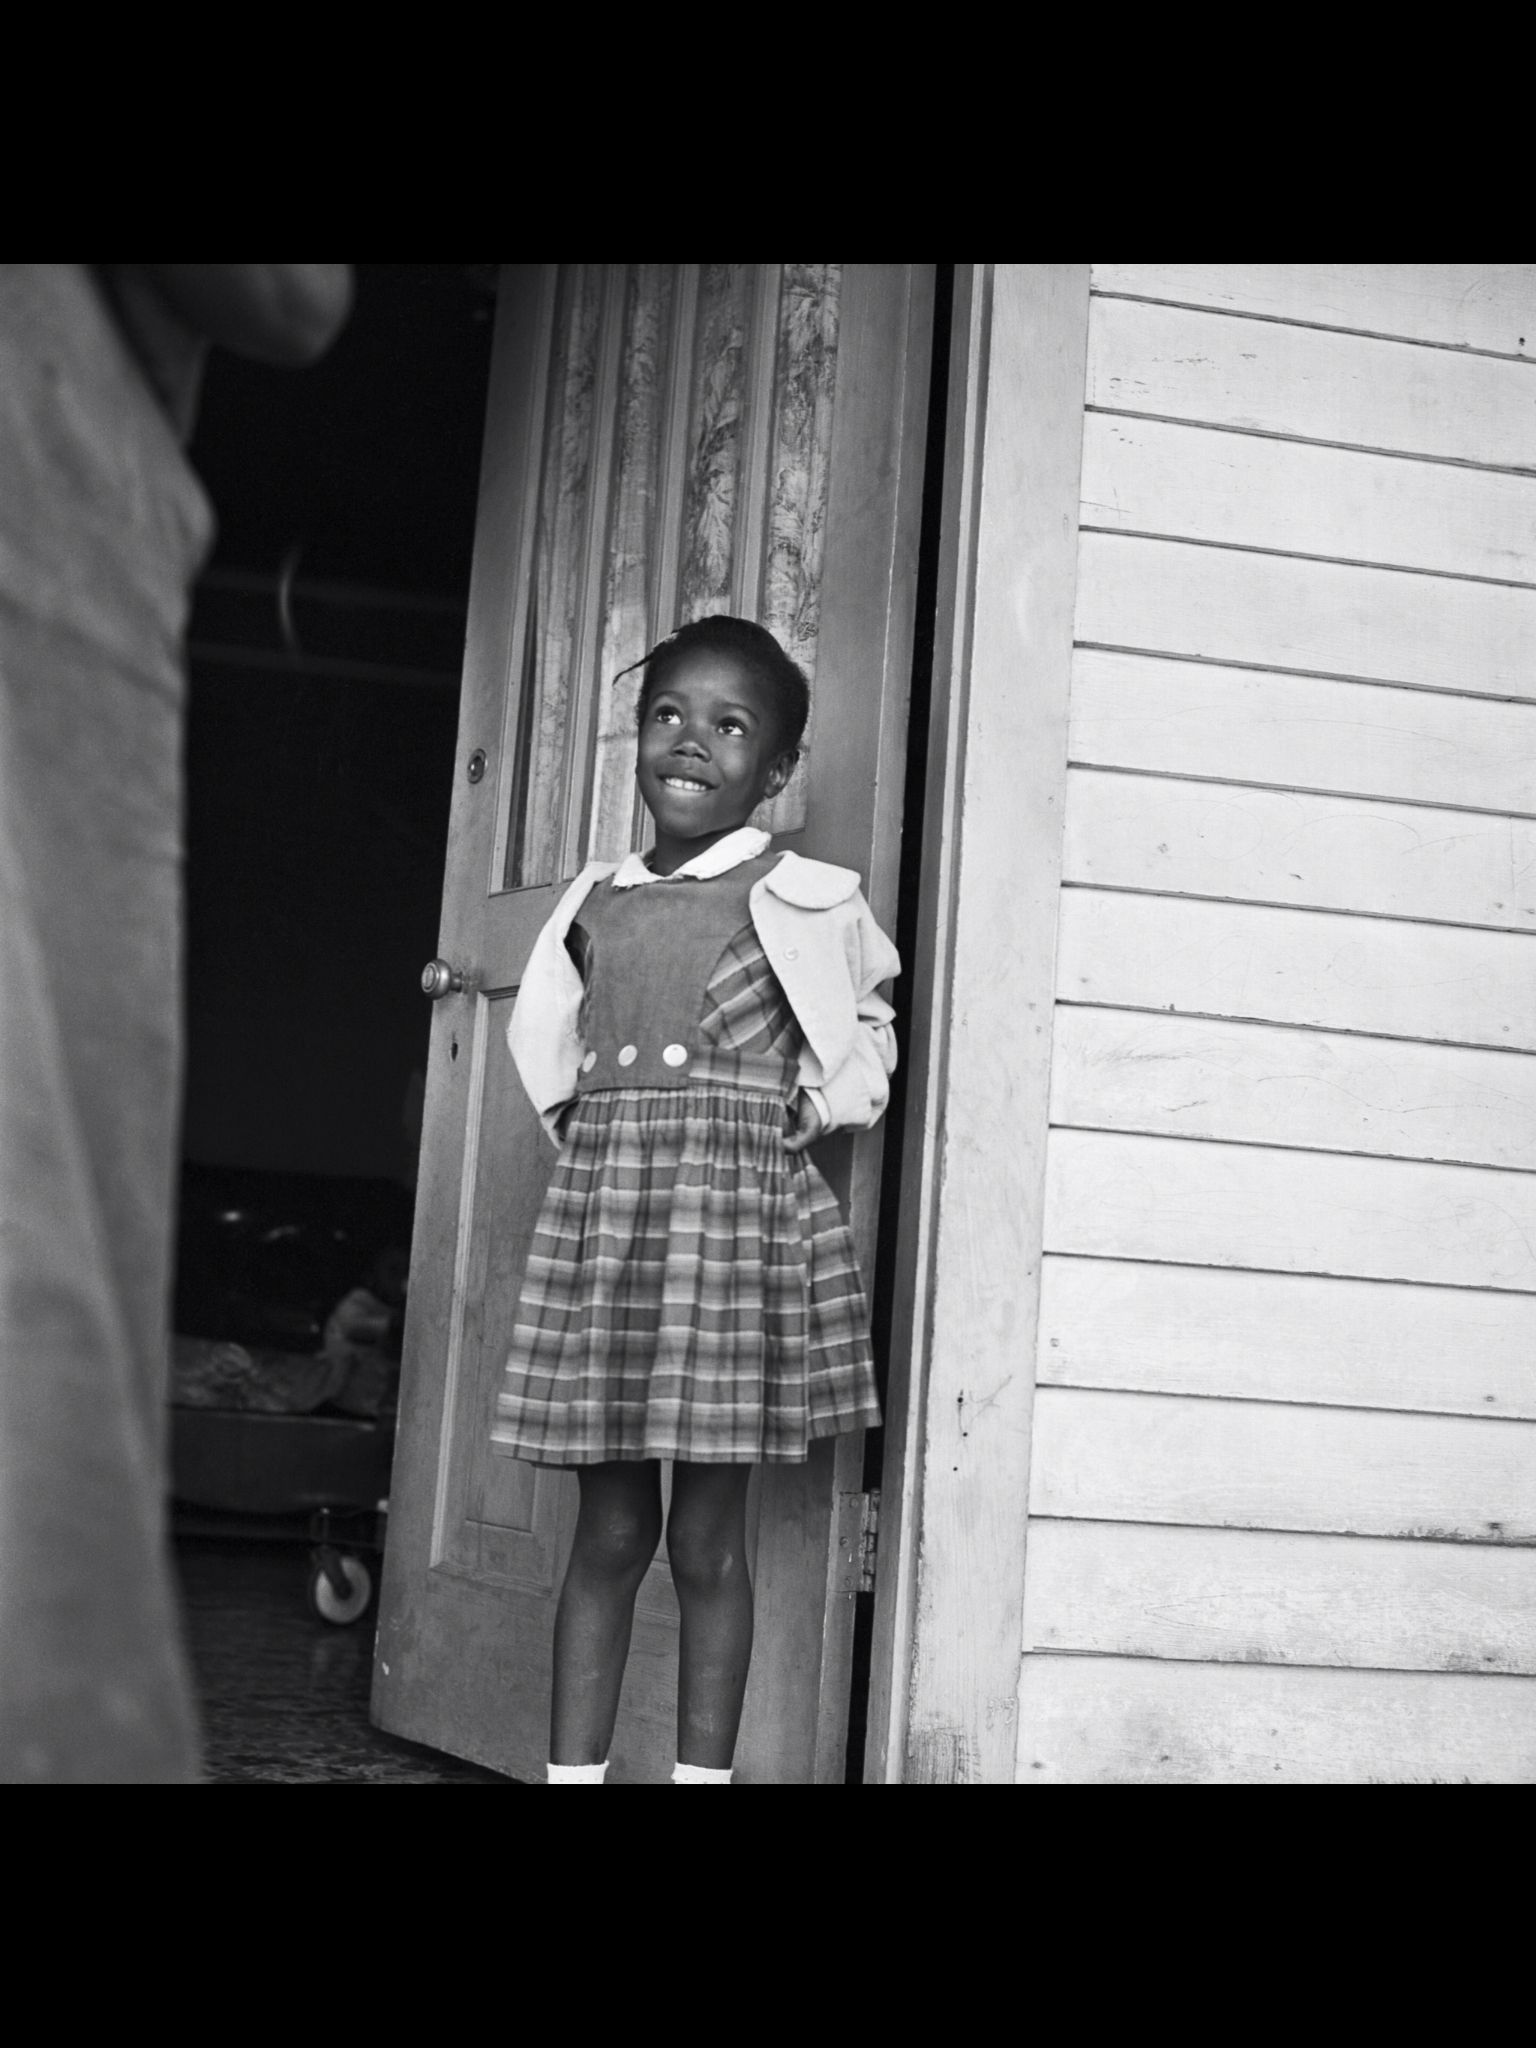 Ruby Nell Bridges Hall Is An American Activist Known For